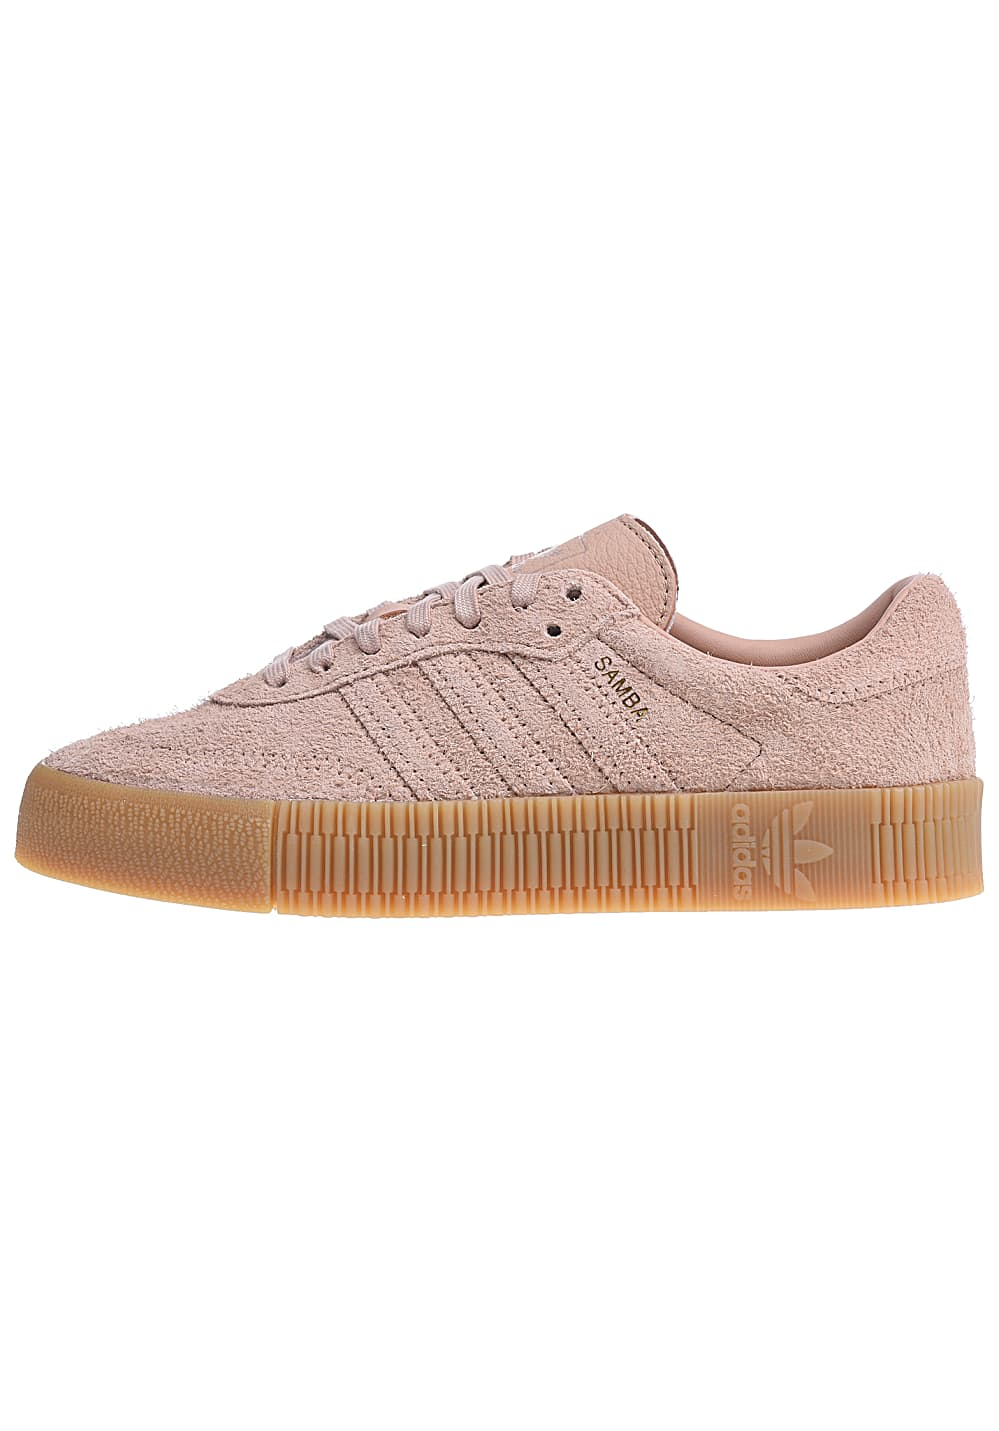 zapatillas adidas samba rose